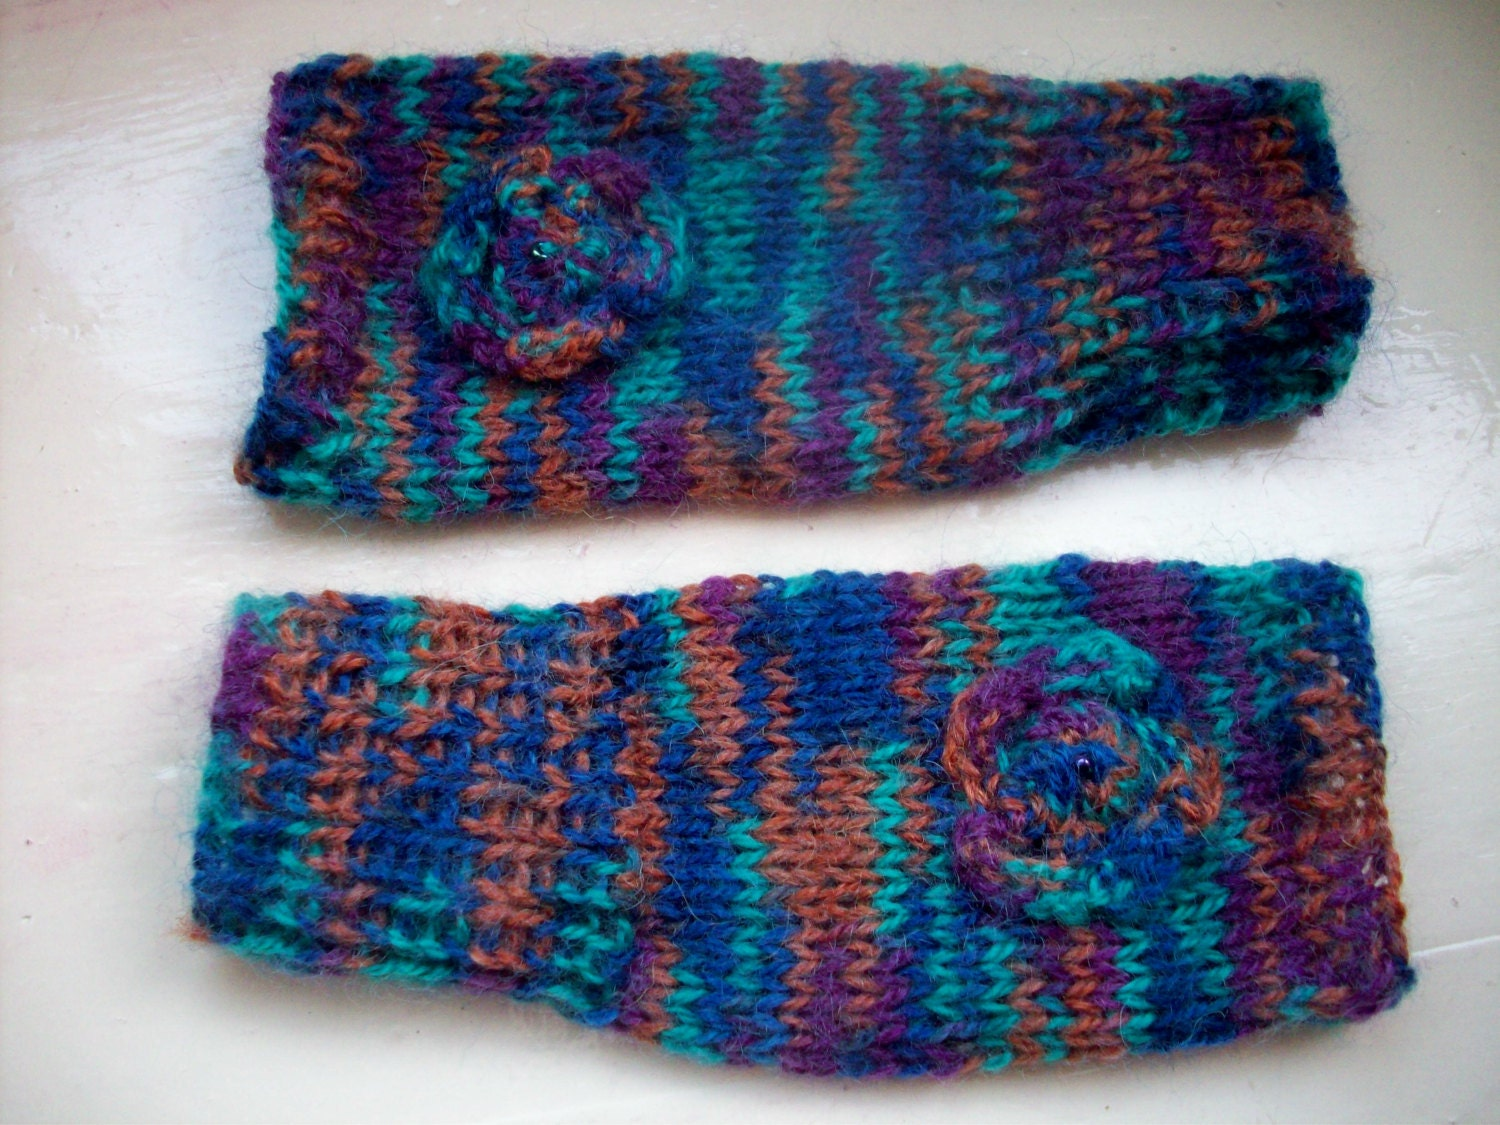 Knitting Kit For Beginners Singapore : Beginner knitting kit hand warmers fingerless gloves turquoise